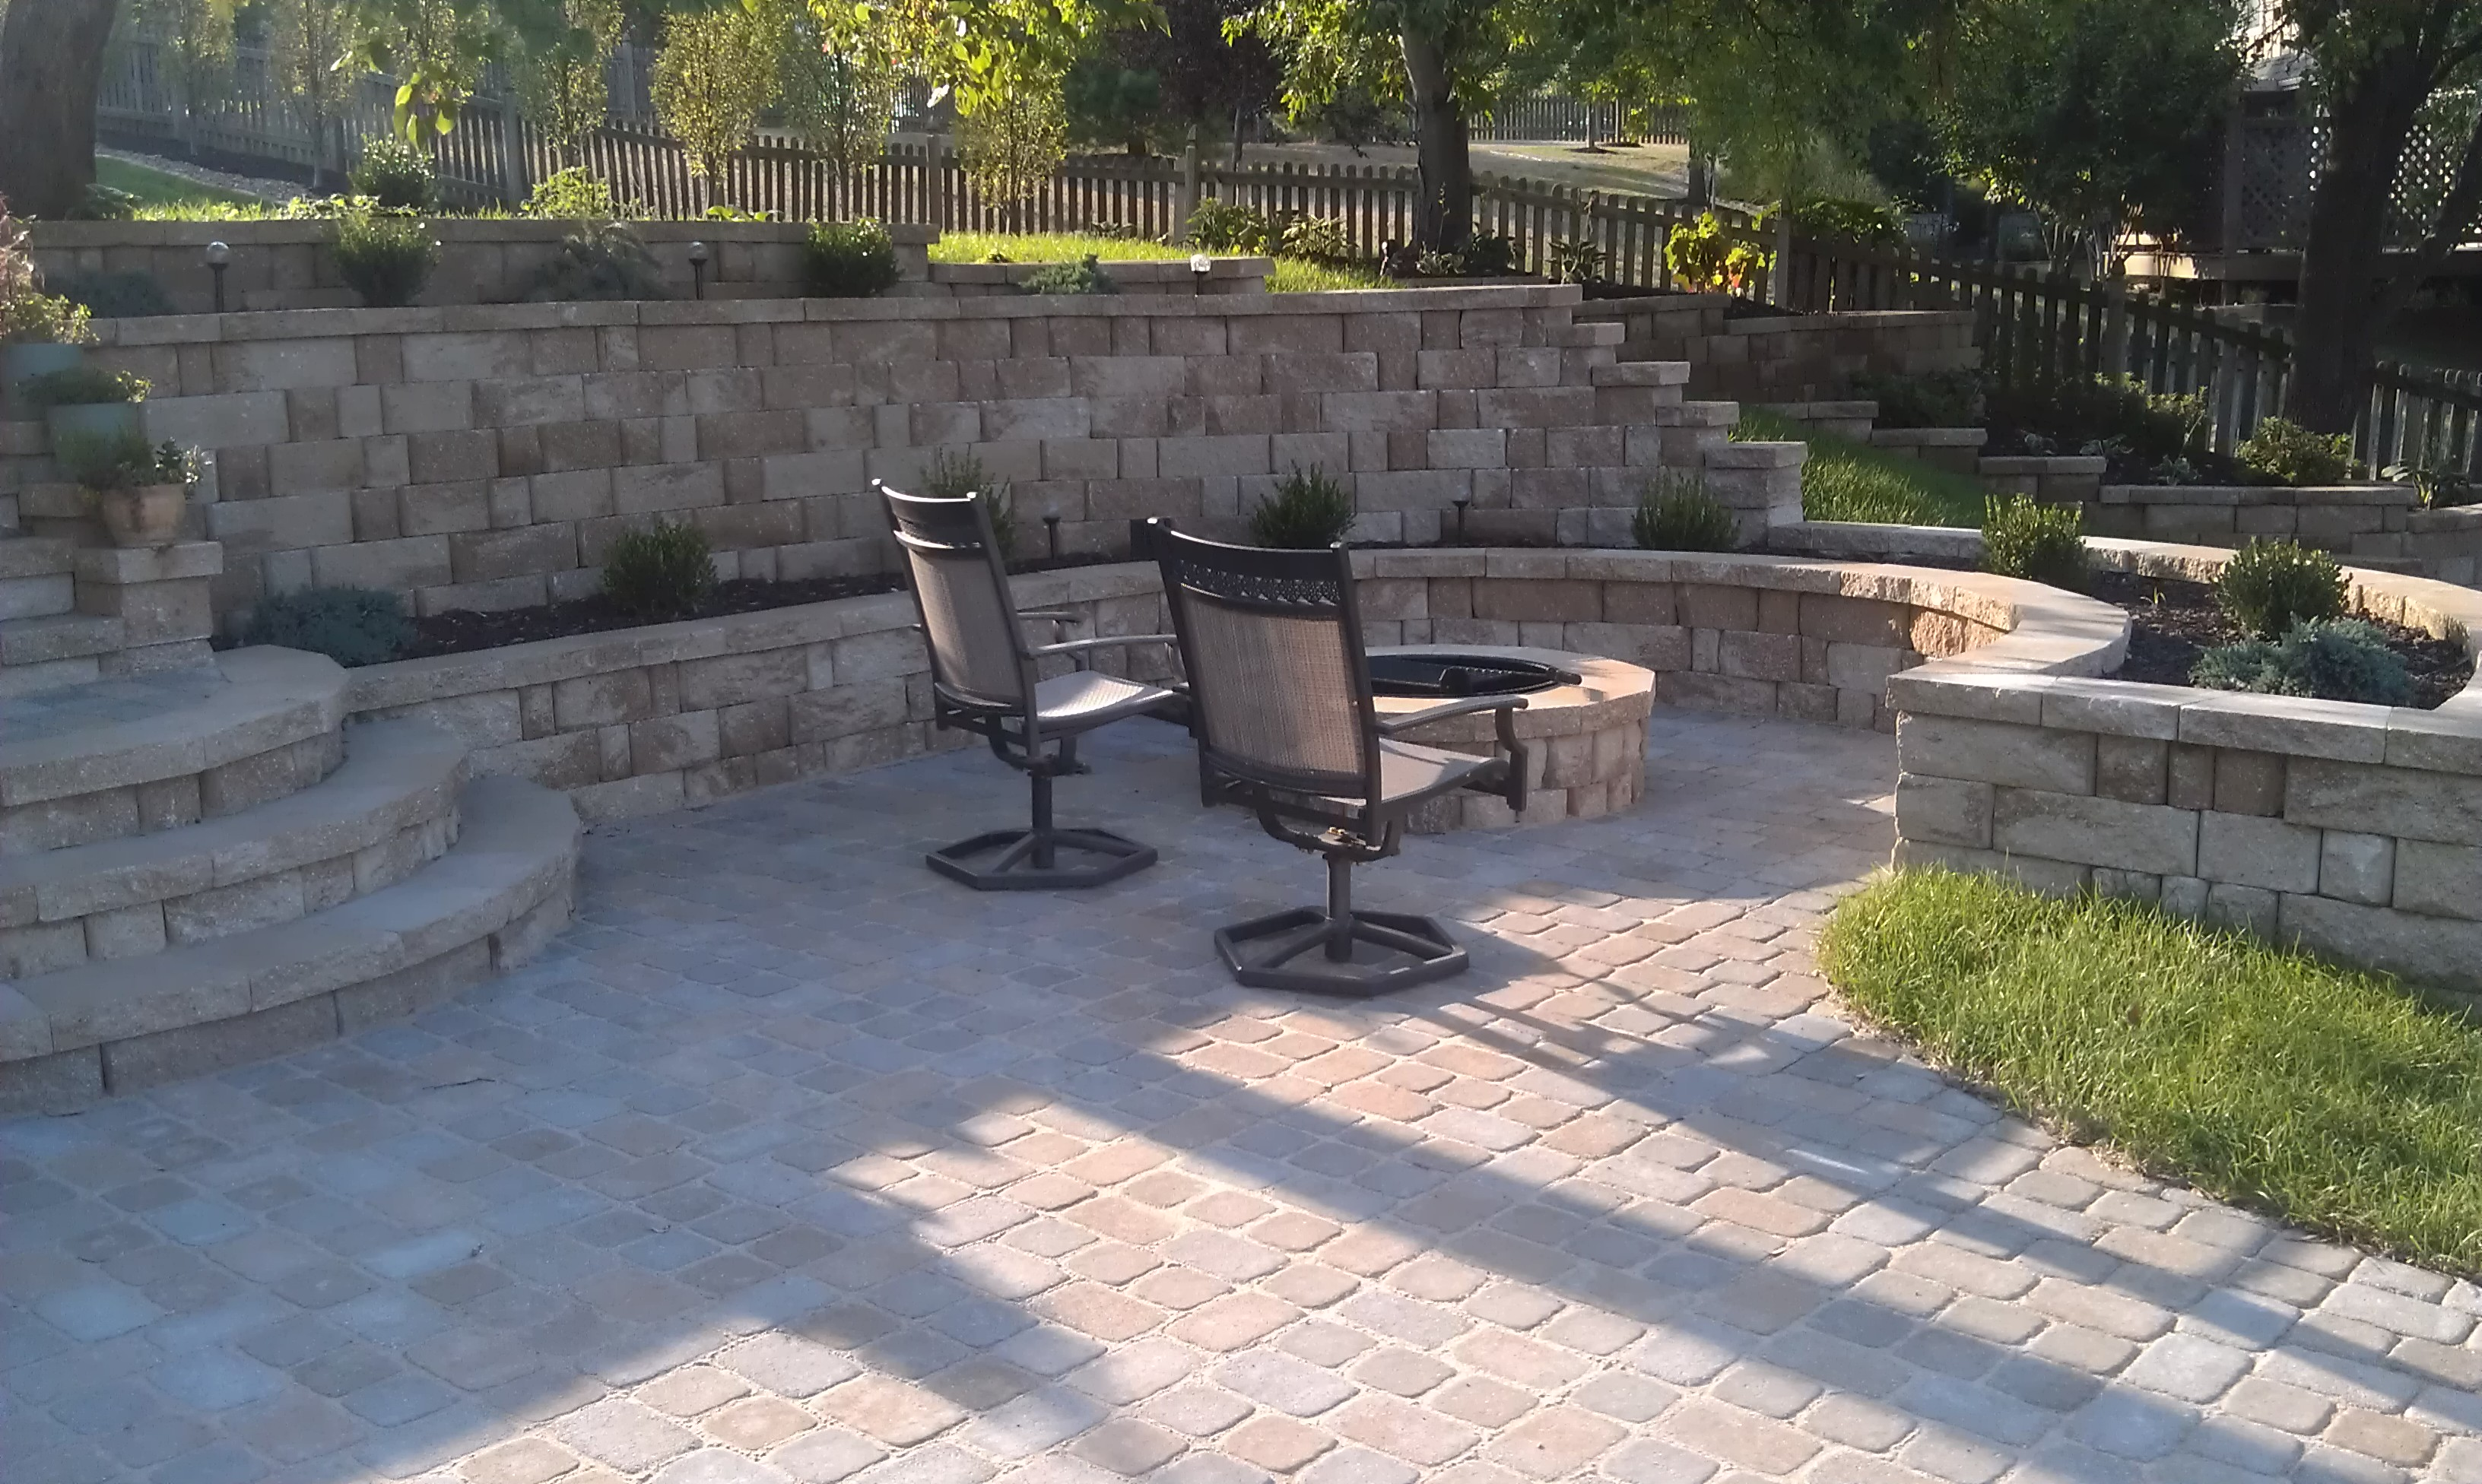 #1 Finished view of patio and walls